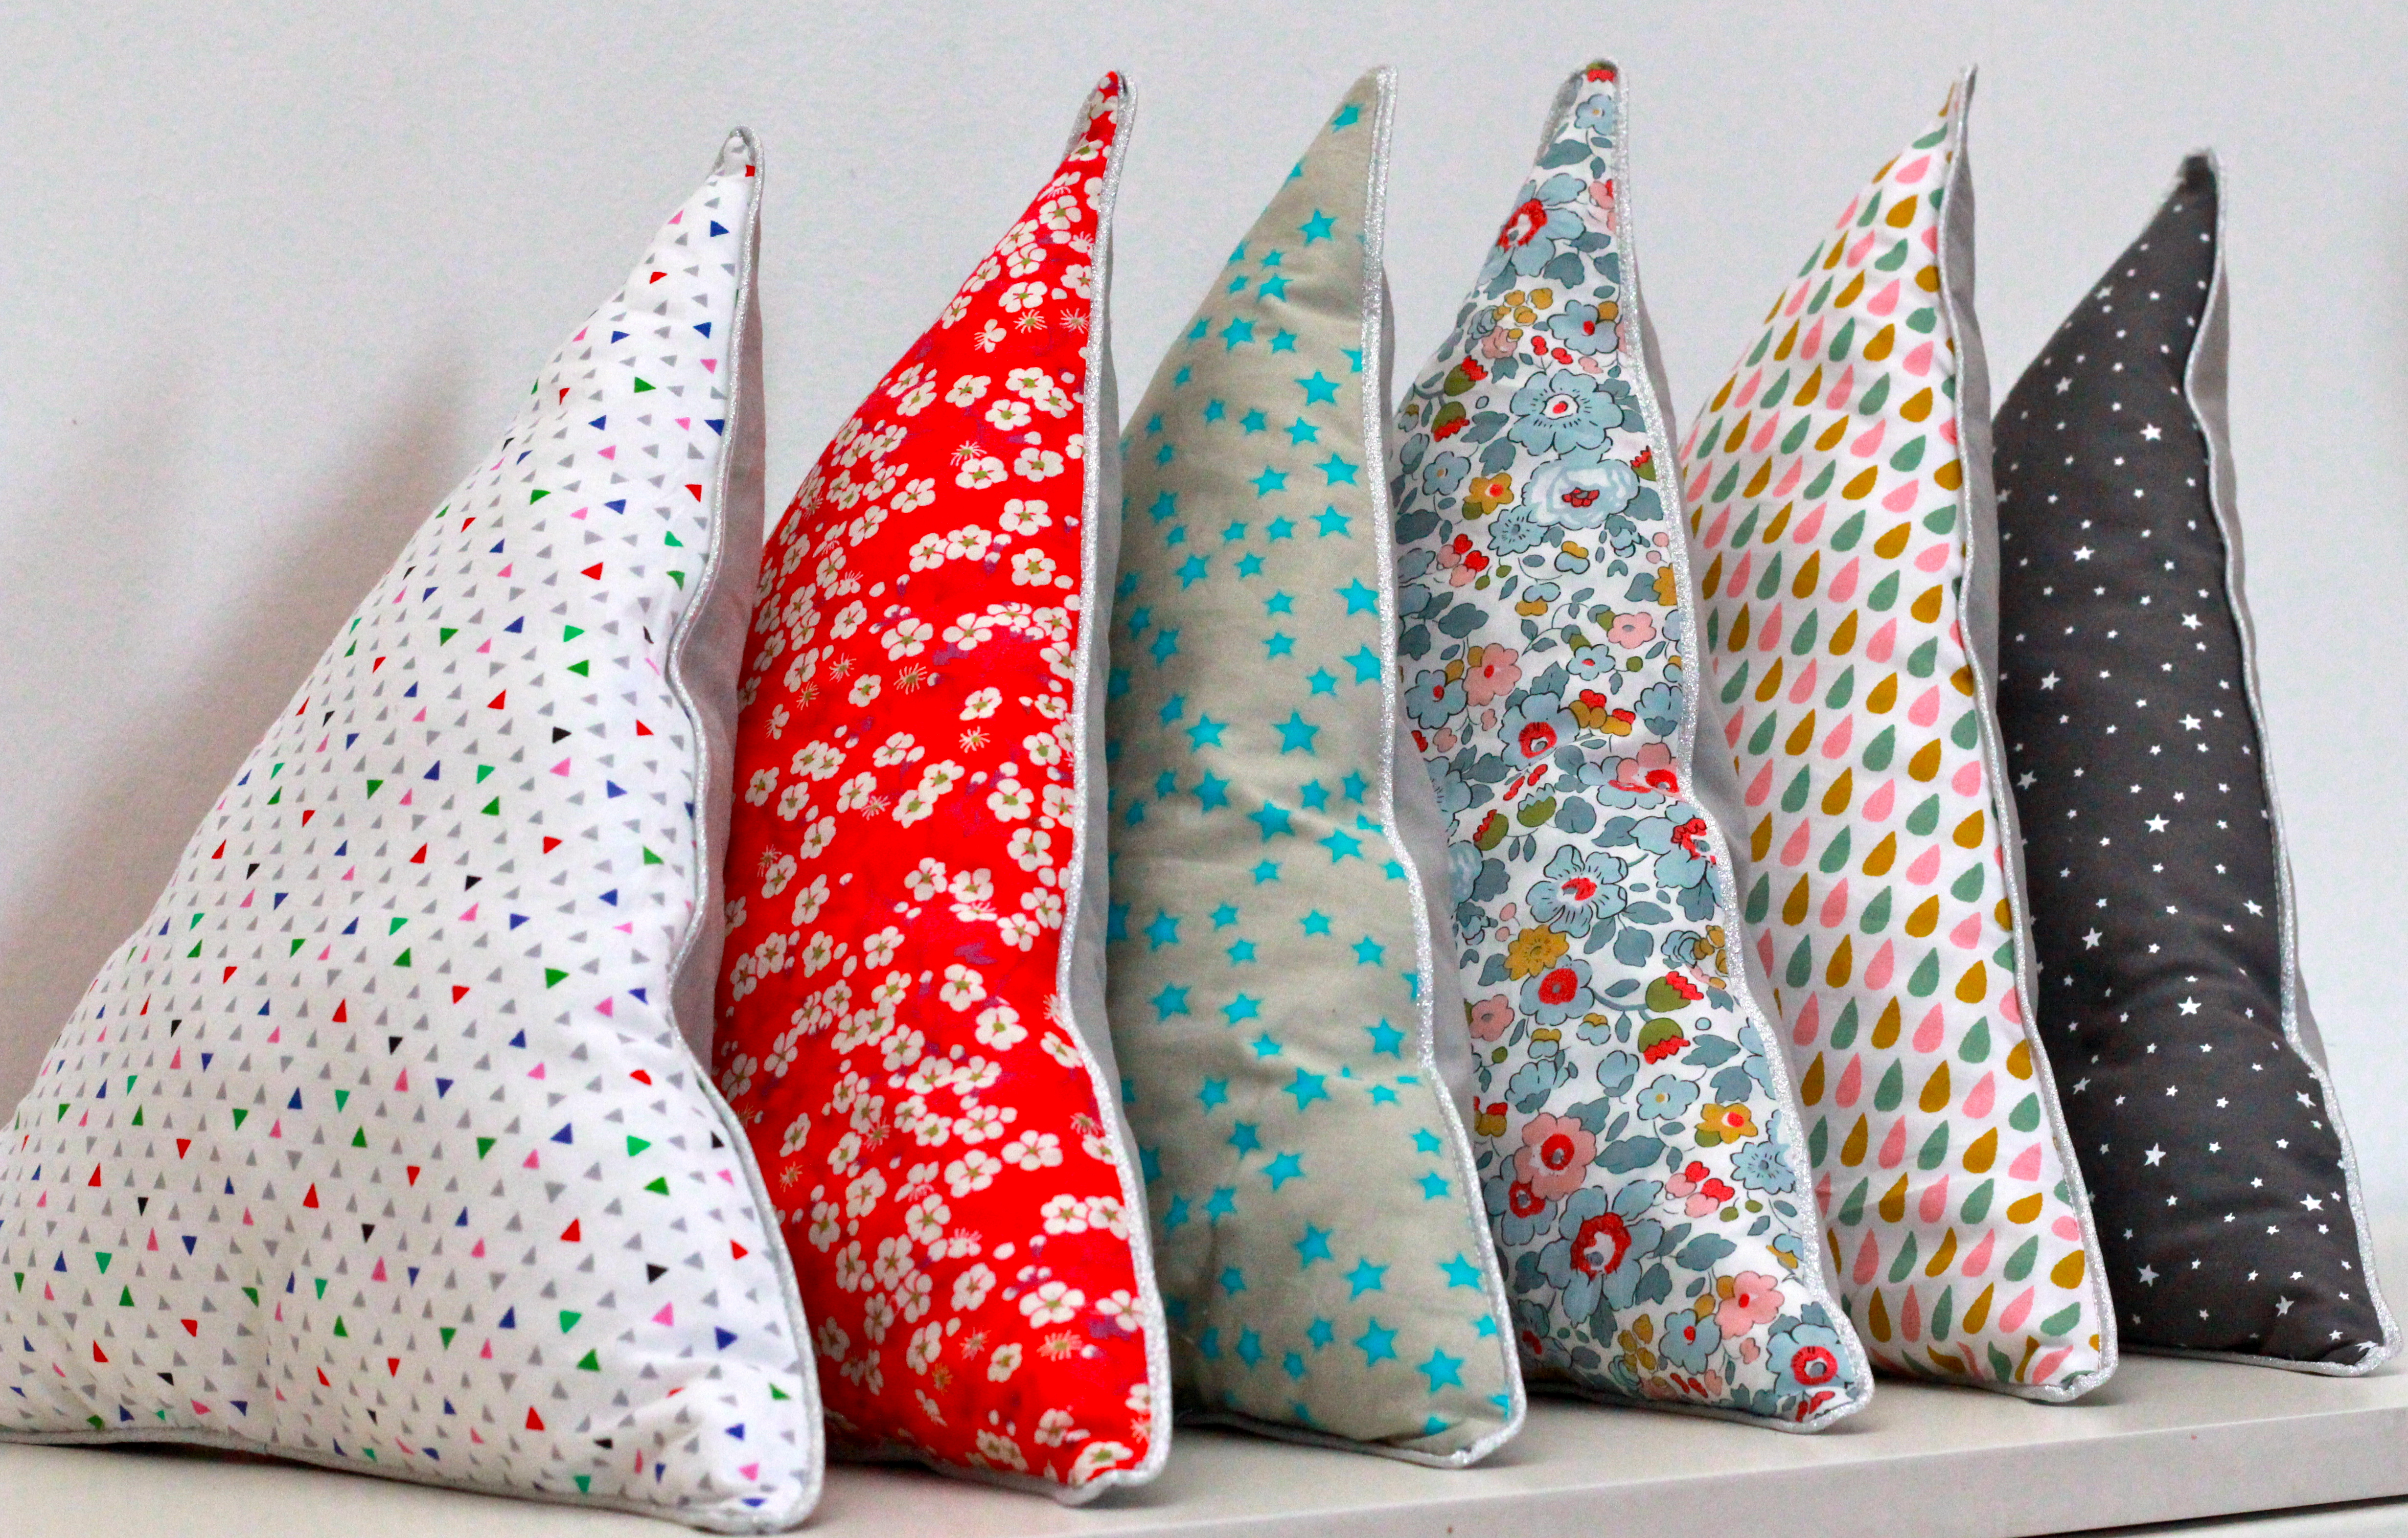 coussin triangle coussin triangle | Atelier numéro4 coussin triangle